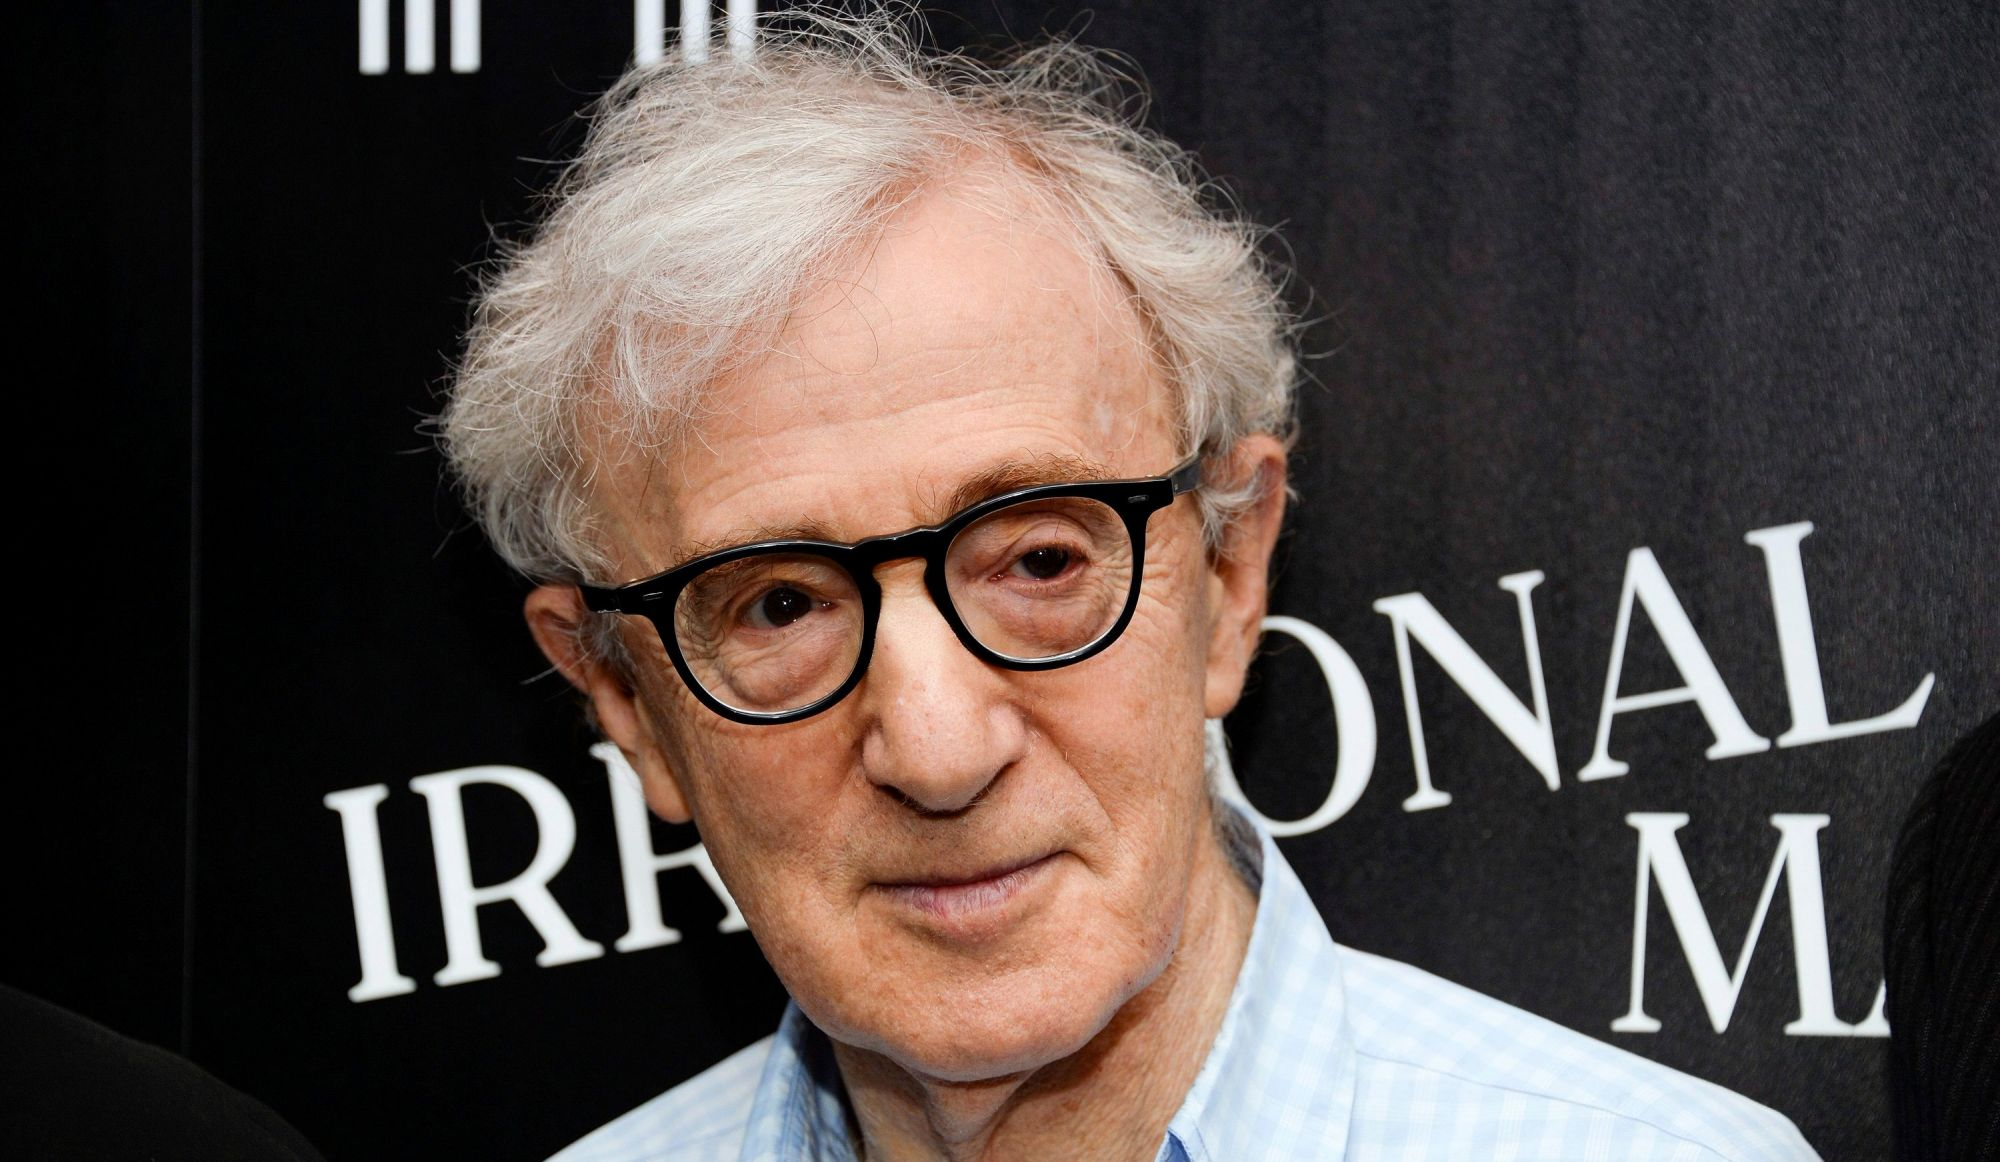 Allégations d'agression: Woody Allen défendu